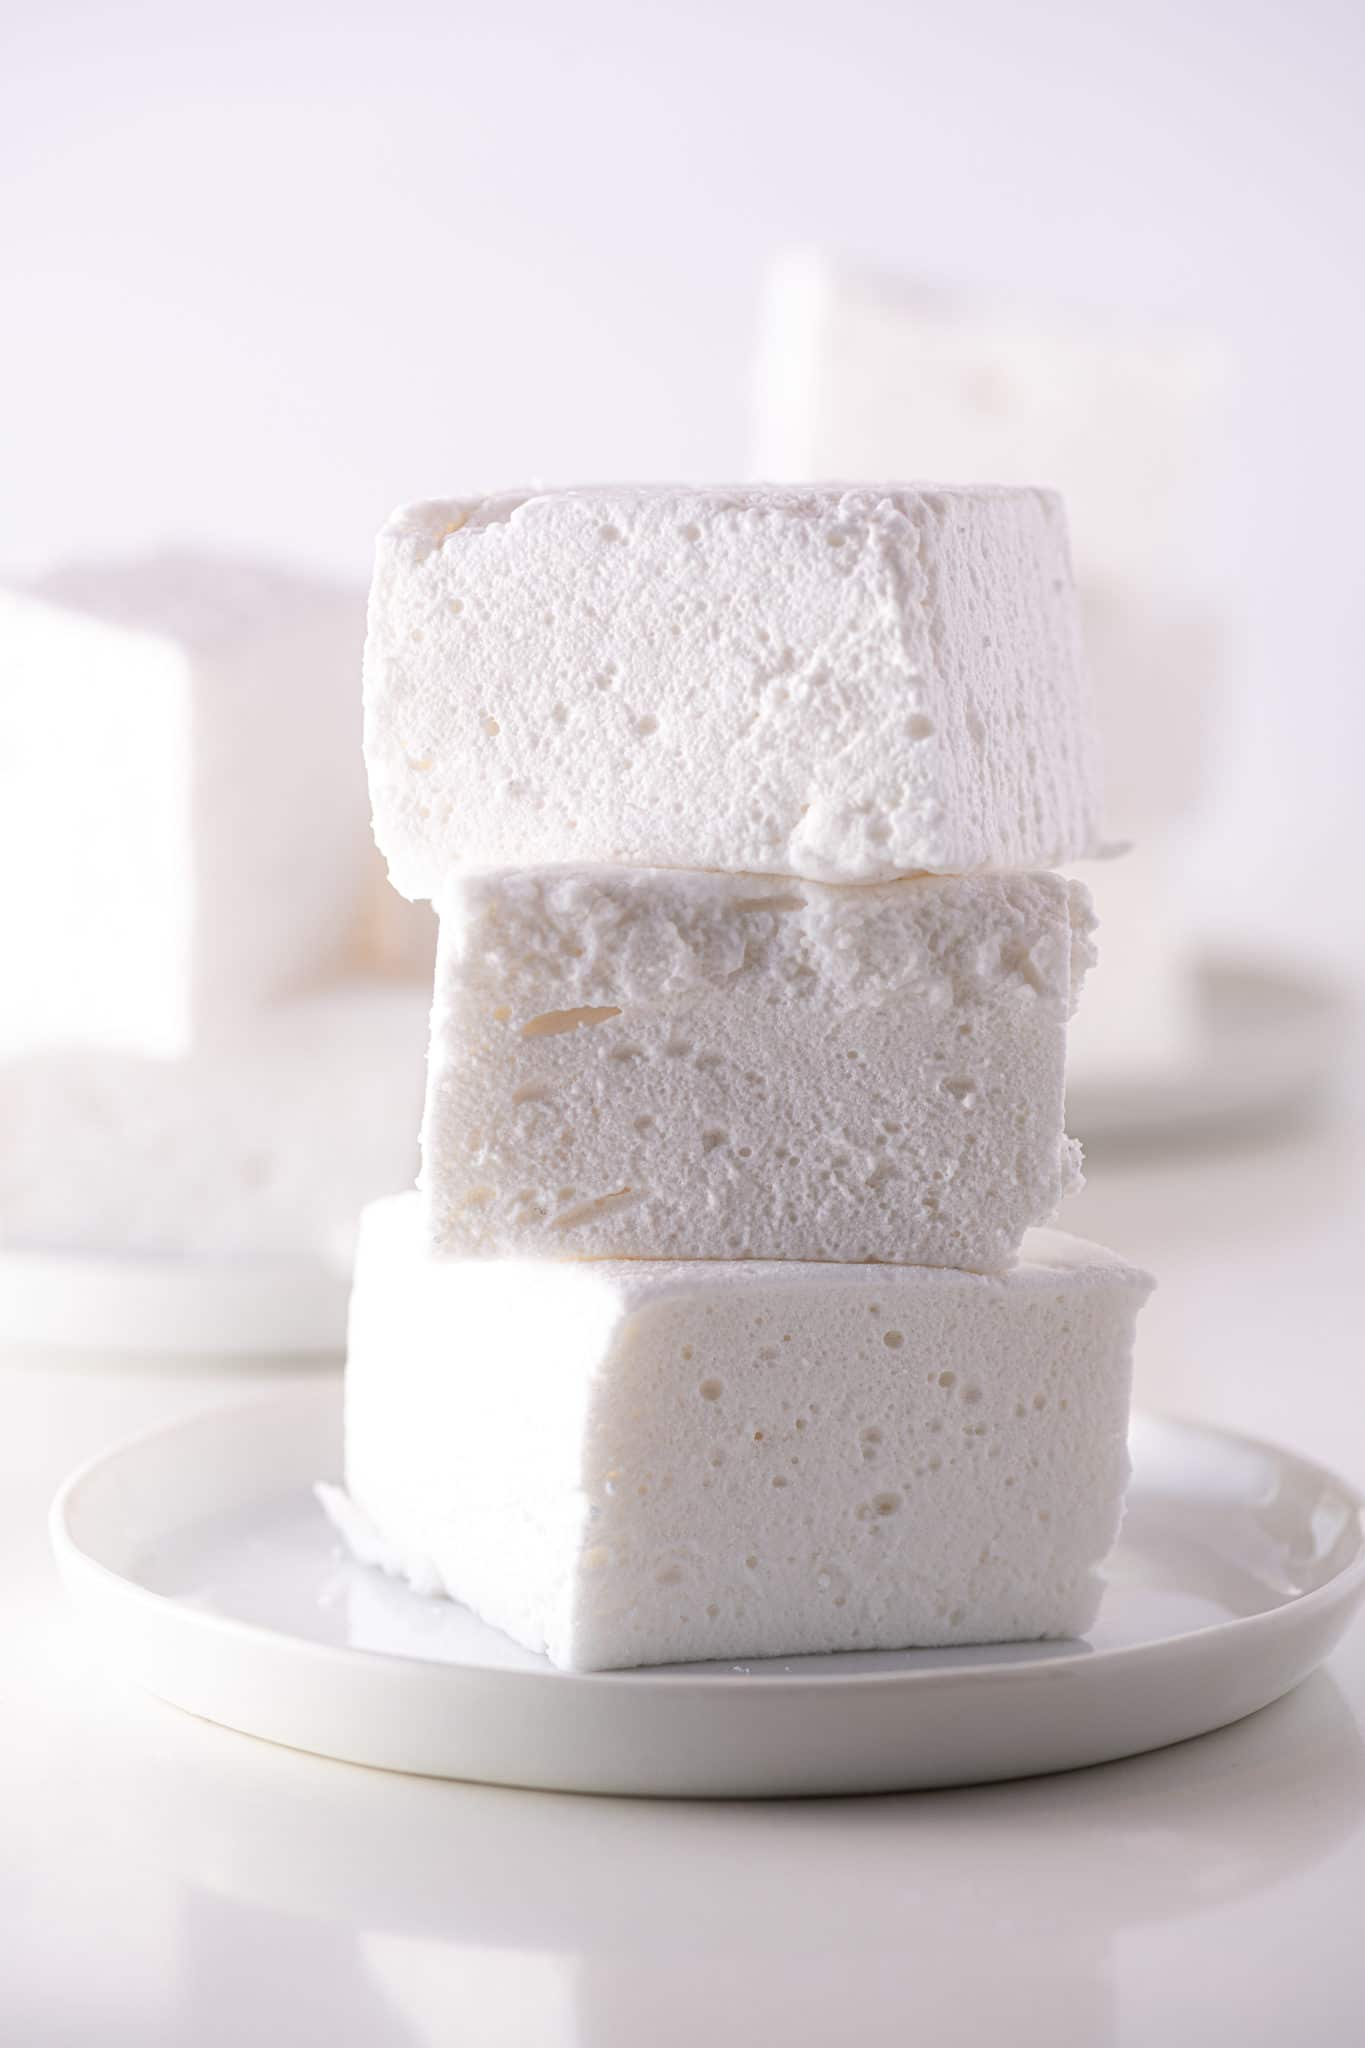 Stack of homemade vanilla sugar-free marshmallows on a white plate against a white background